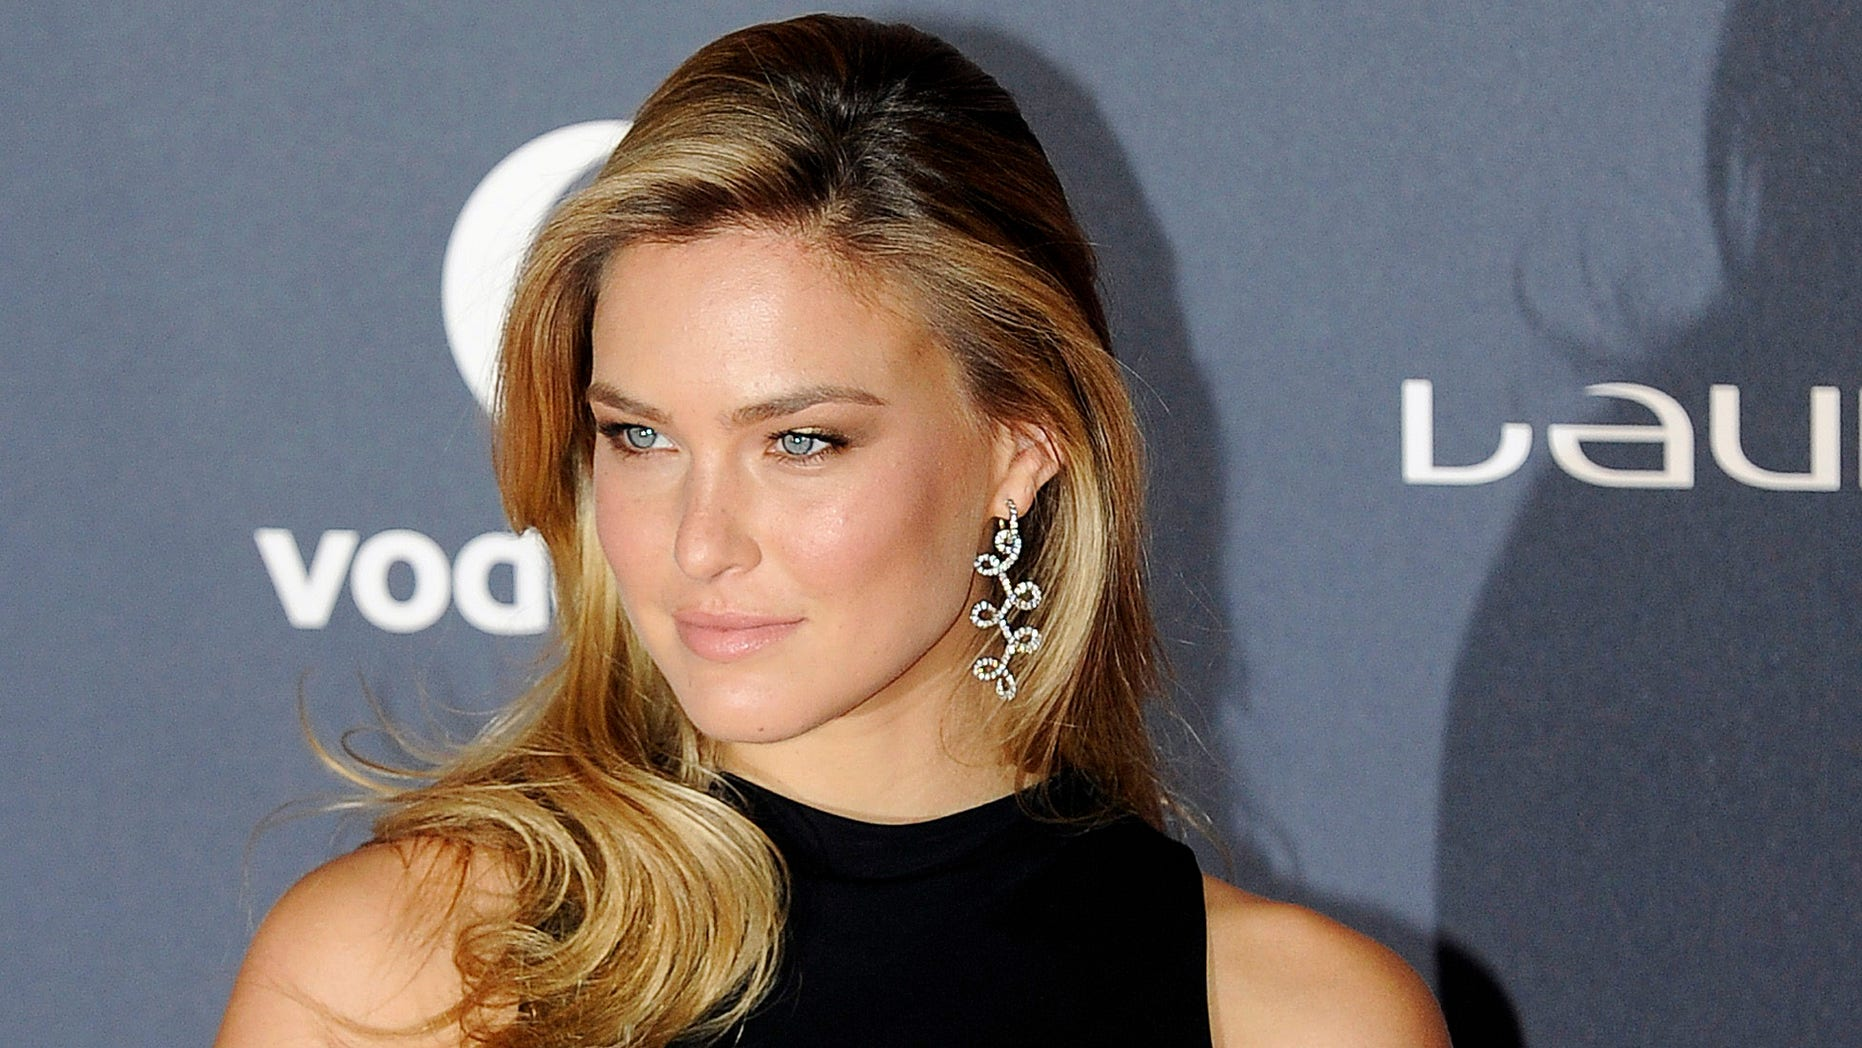 Model Bar Refaeli poses for photographs as she attends the 2012 Laureus World Sports Awards, central London, February 6, 2012.   REUTERS/Paul Hackett  (BRITAIN - Tags: ENTERTAINMENT SPORT) - RTR2XF99